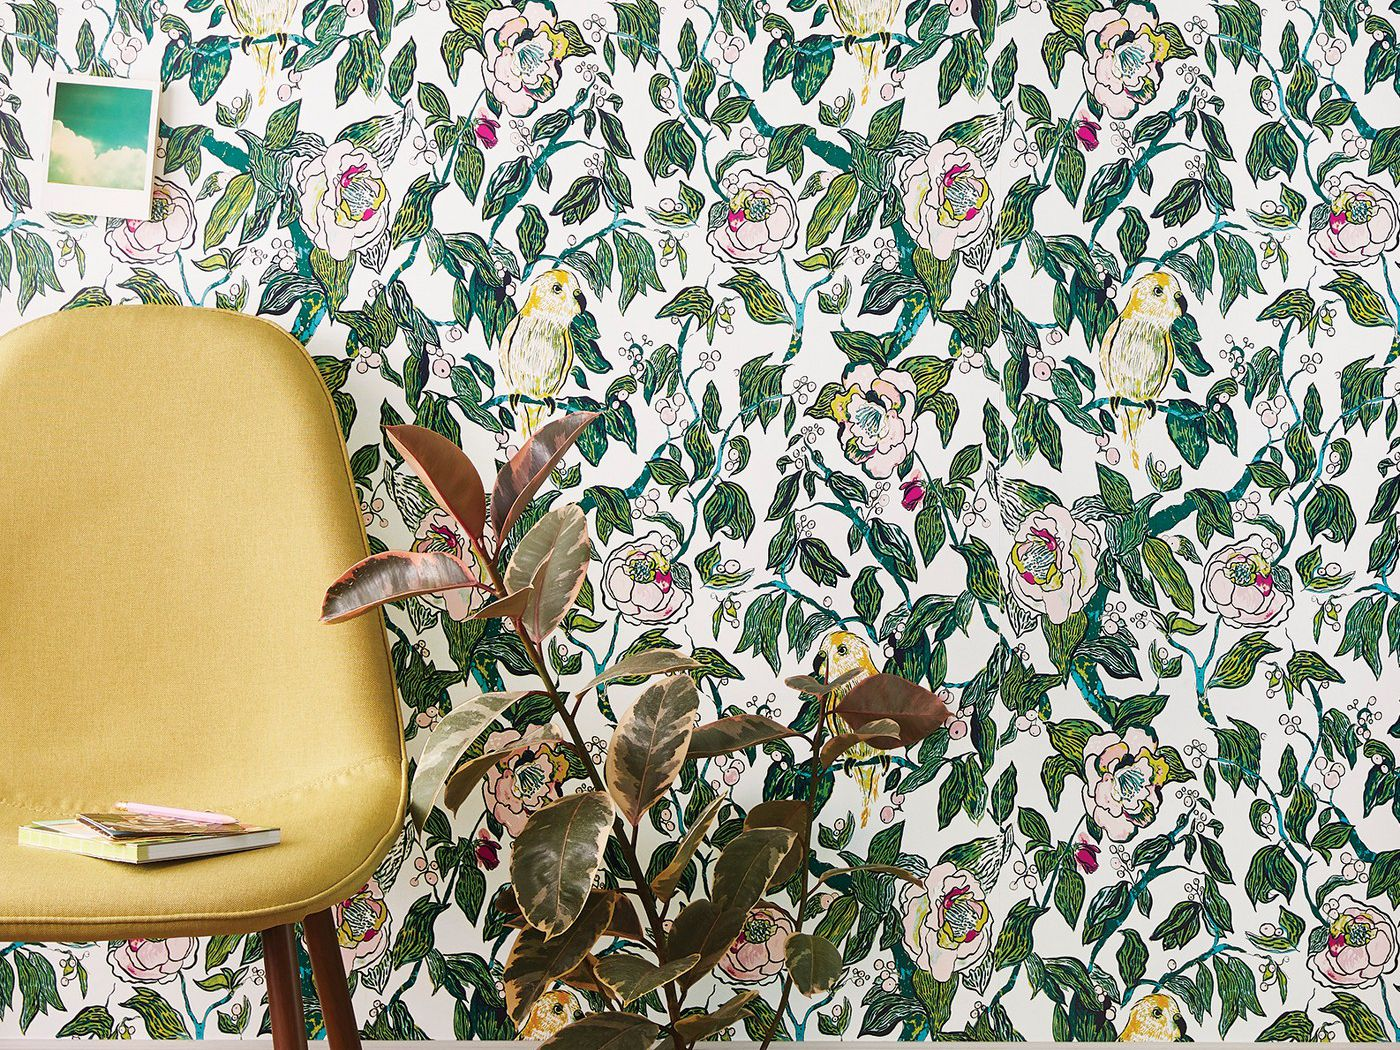 The 8 Best Removable Wallpaper